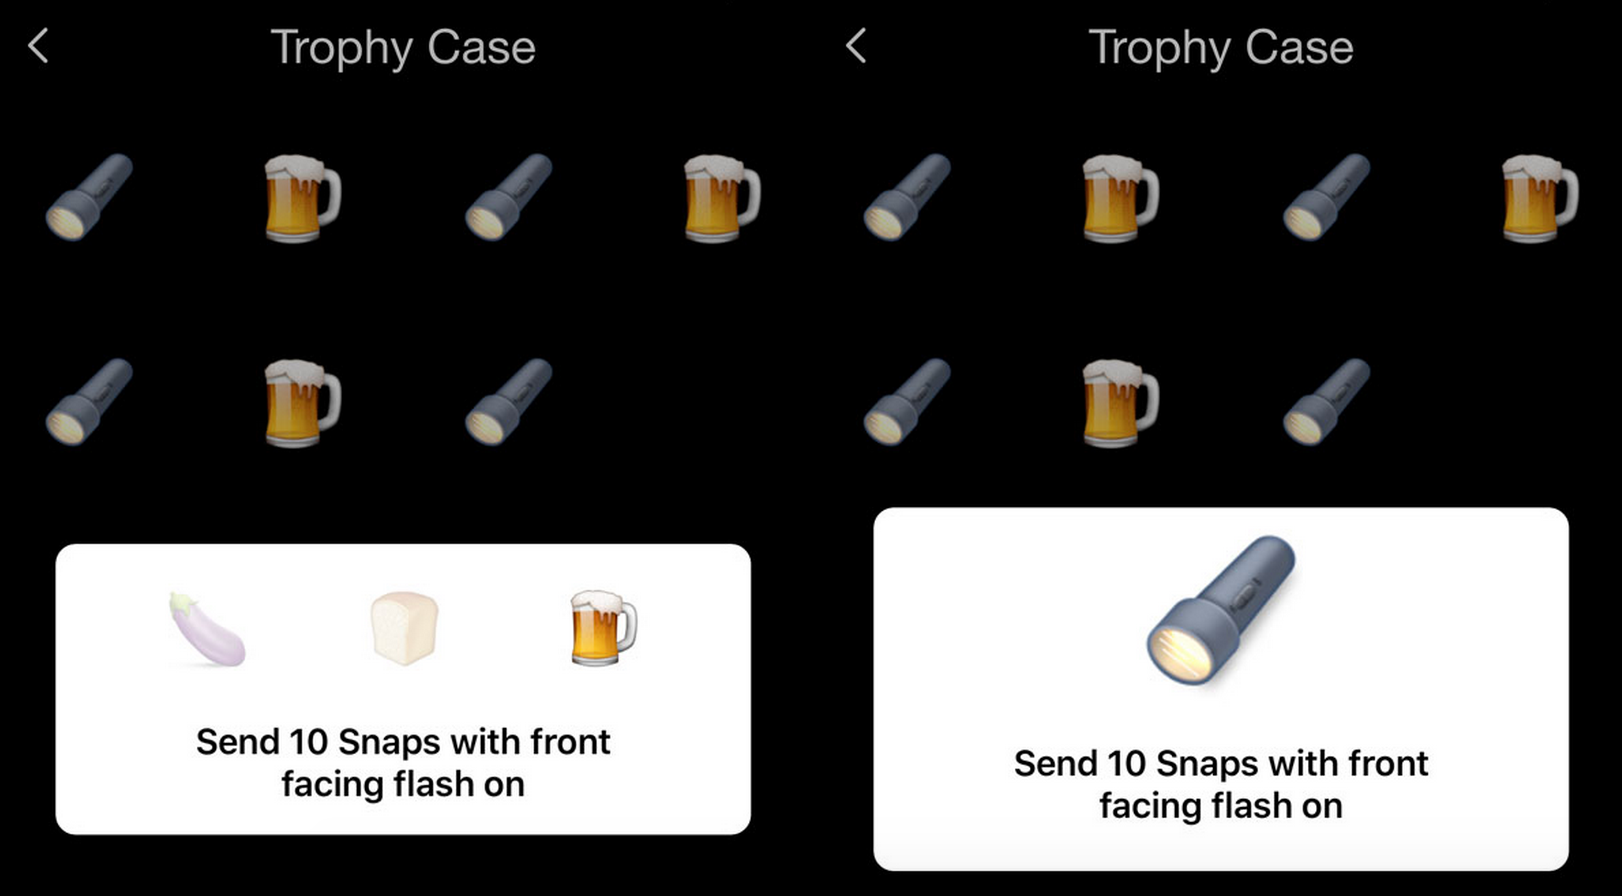 Snapchat has a mysterious new trophy case for achievements